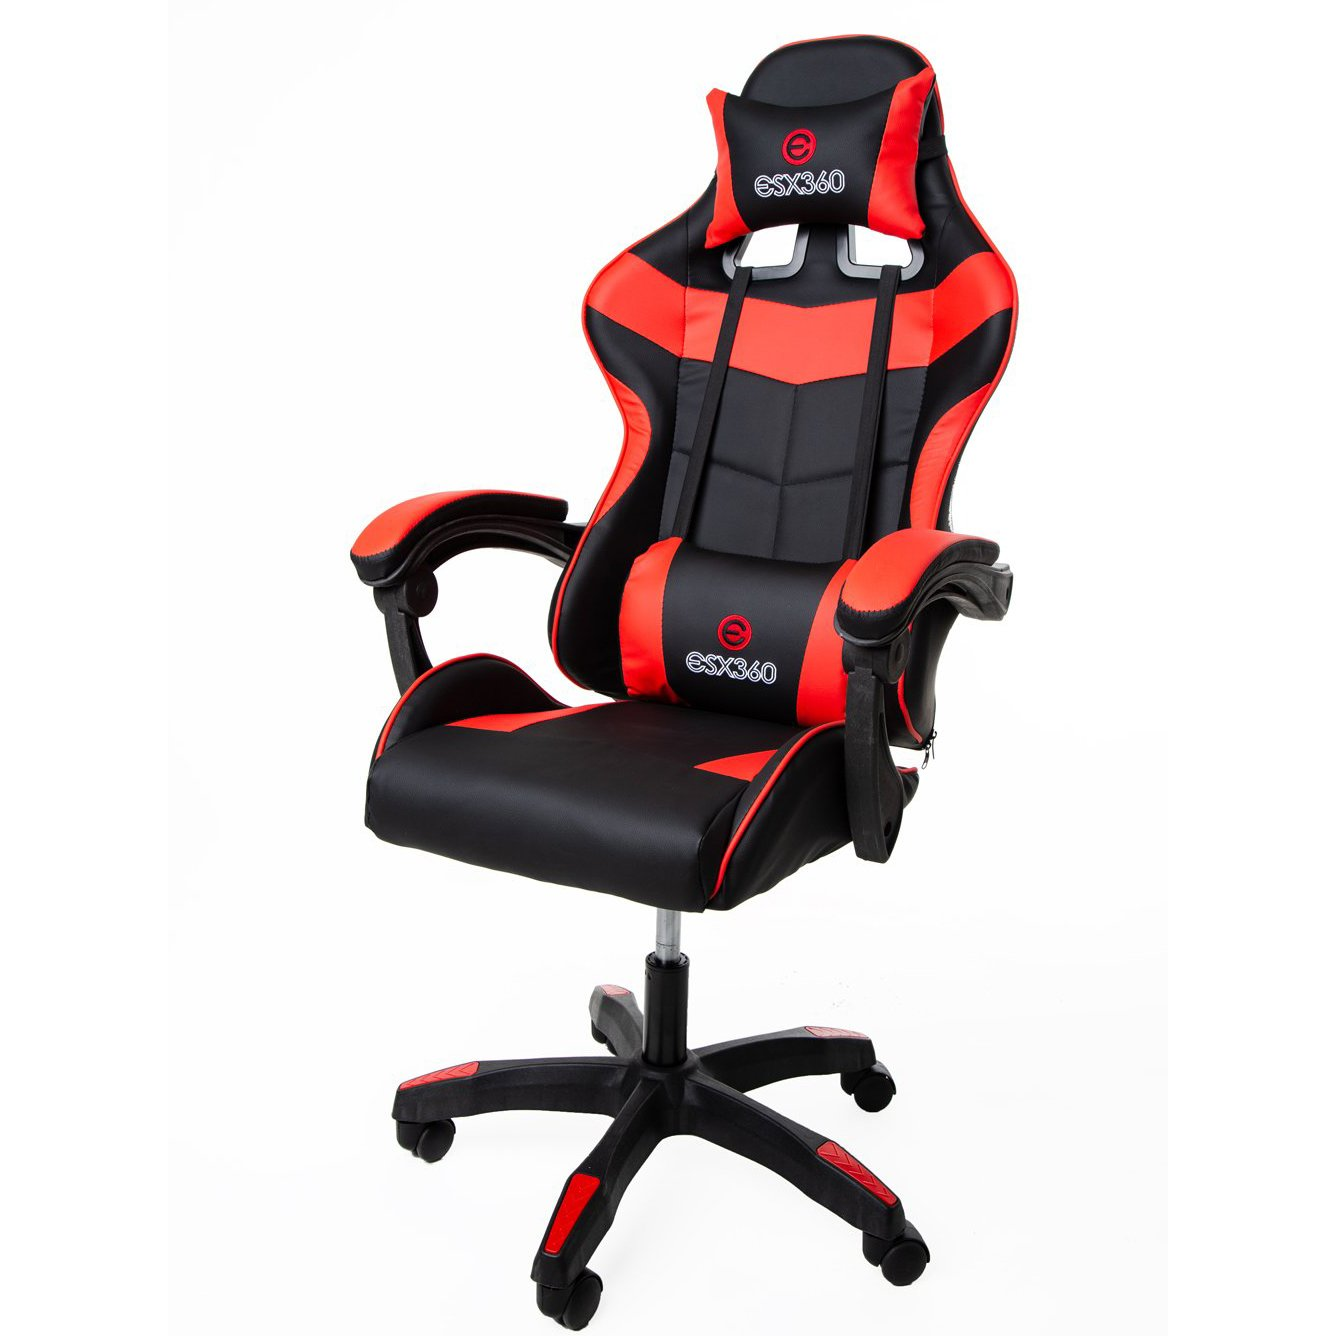 A guide to choosing a suitable gaming chair